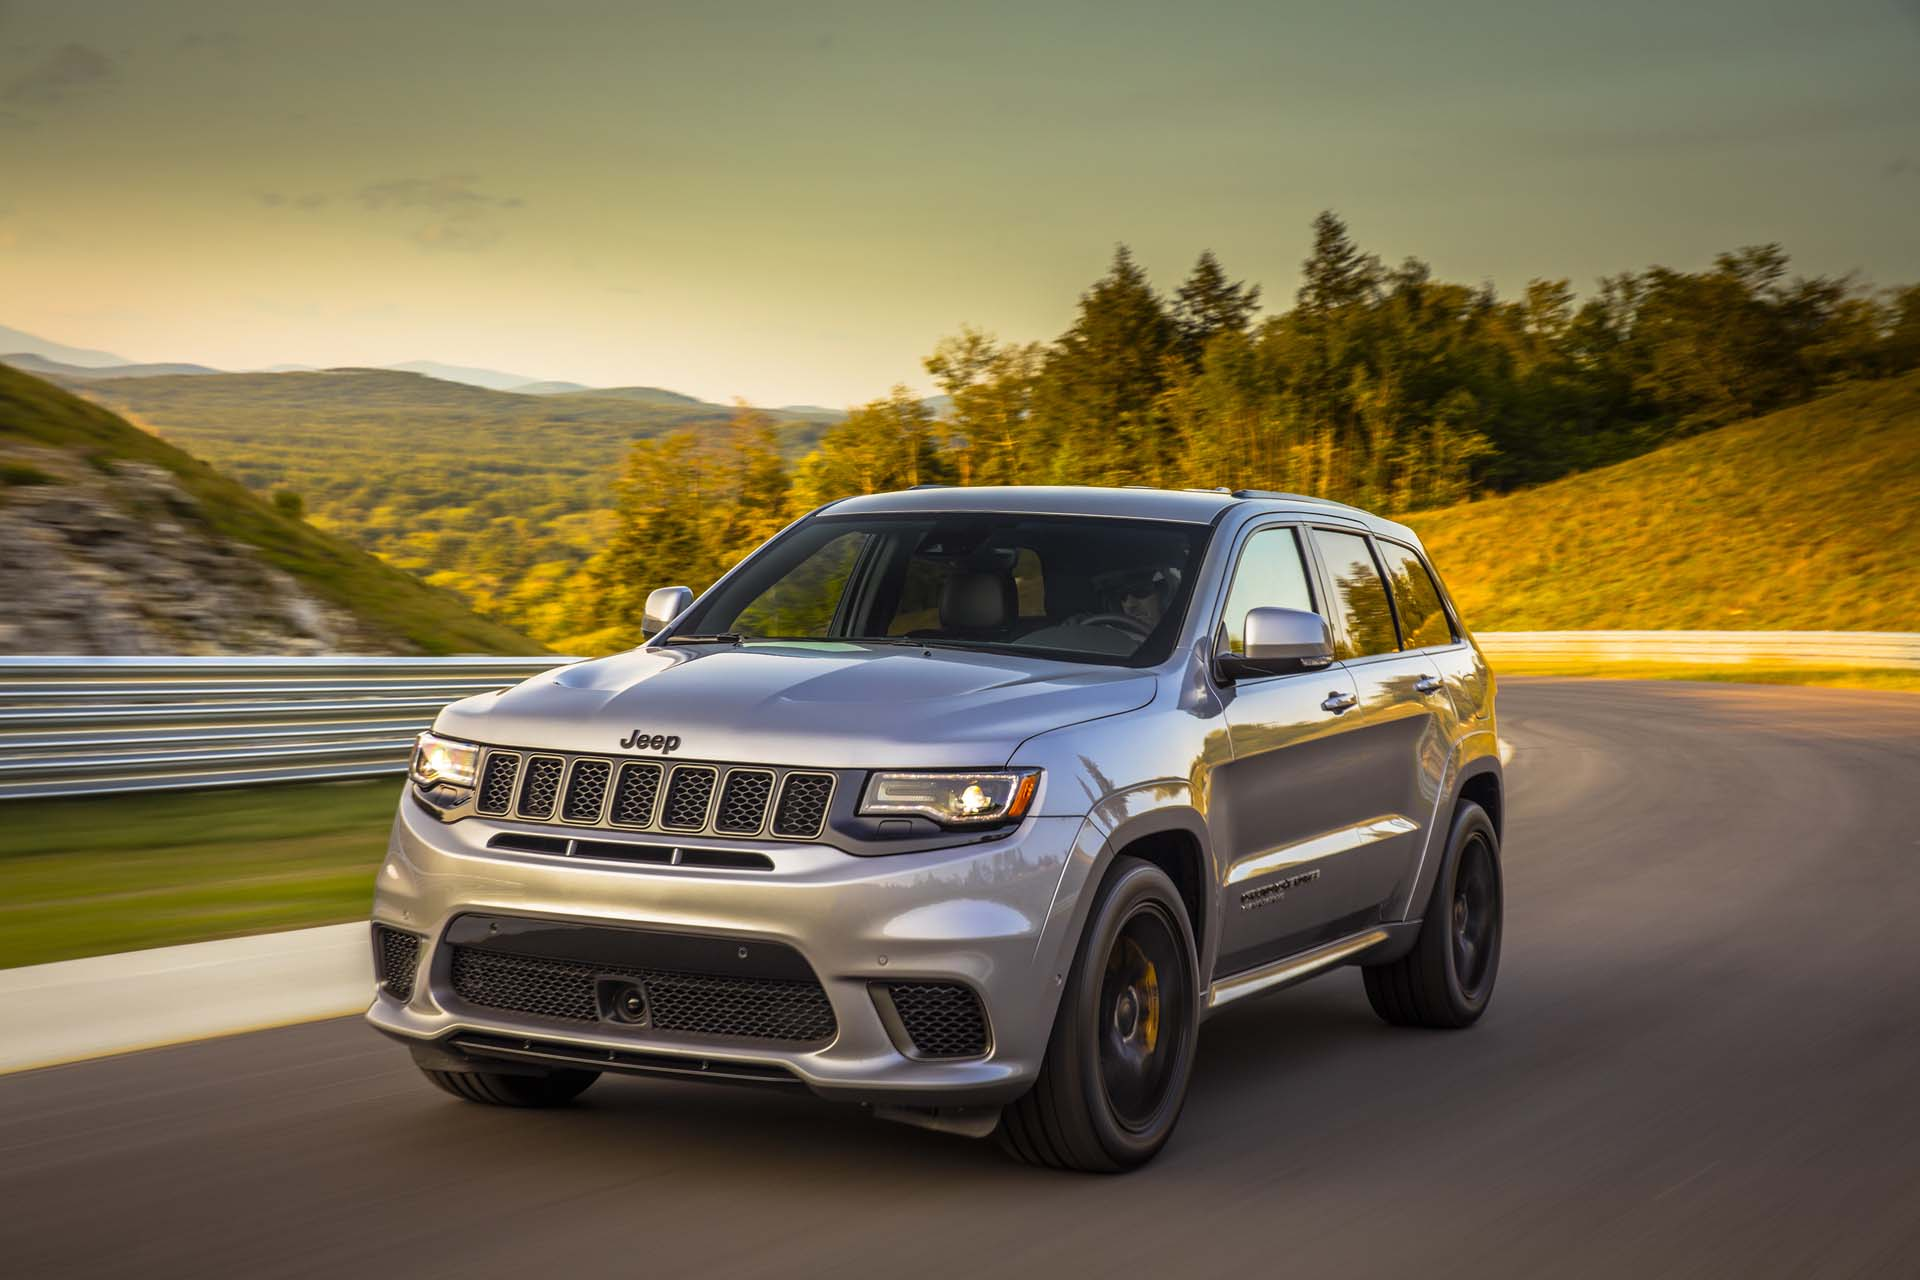 2018 jeep grand cherokee trackhawk first drive the most expensive violent hellcat yet. Black Bedroom Furniture Sets. Home Design Ideas